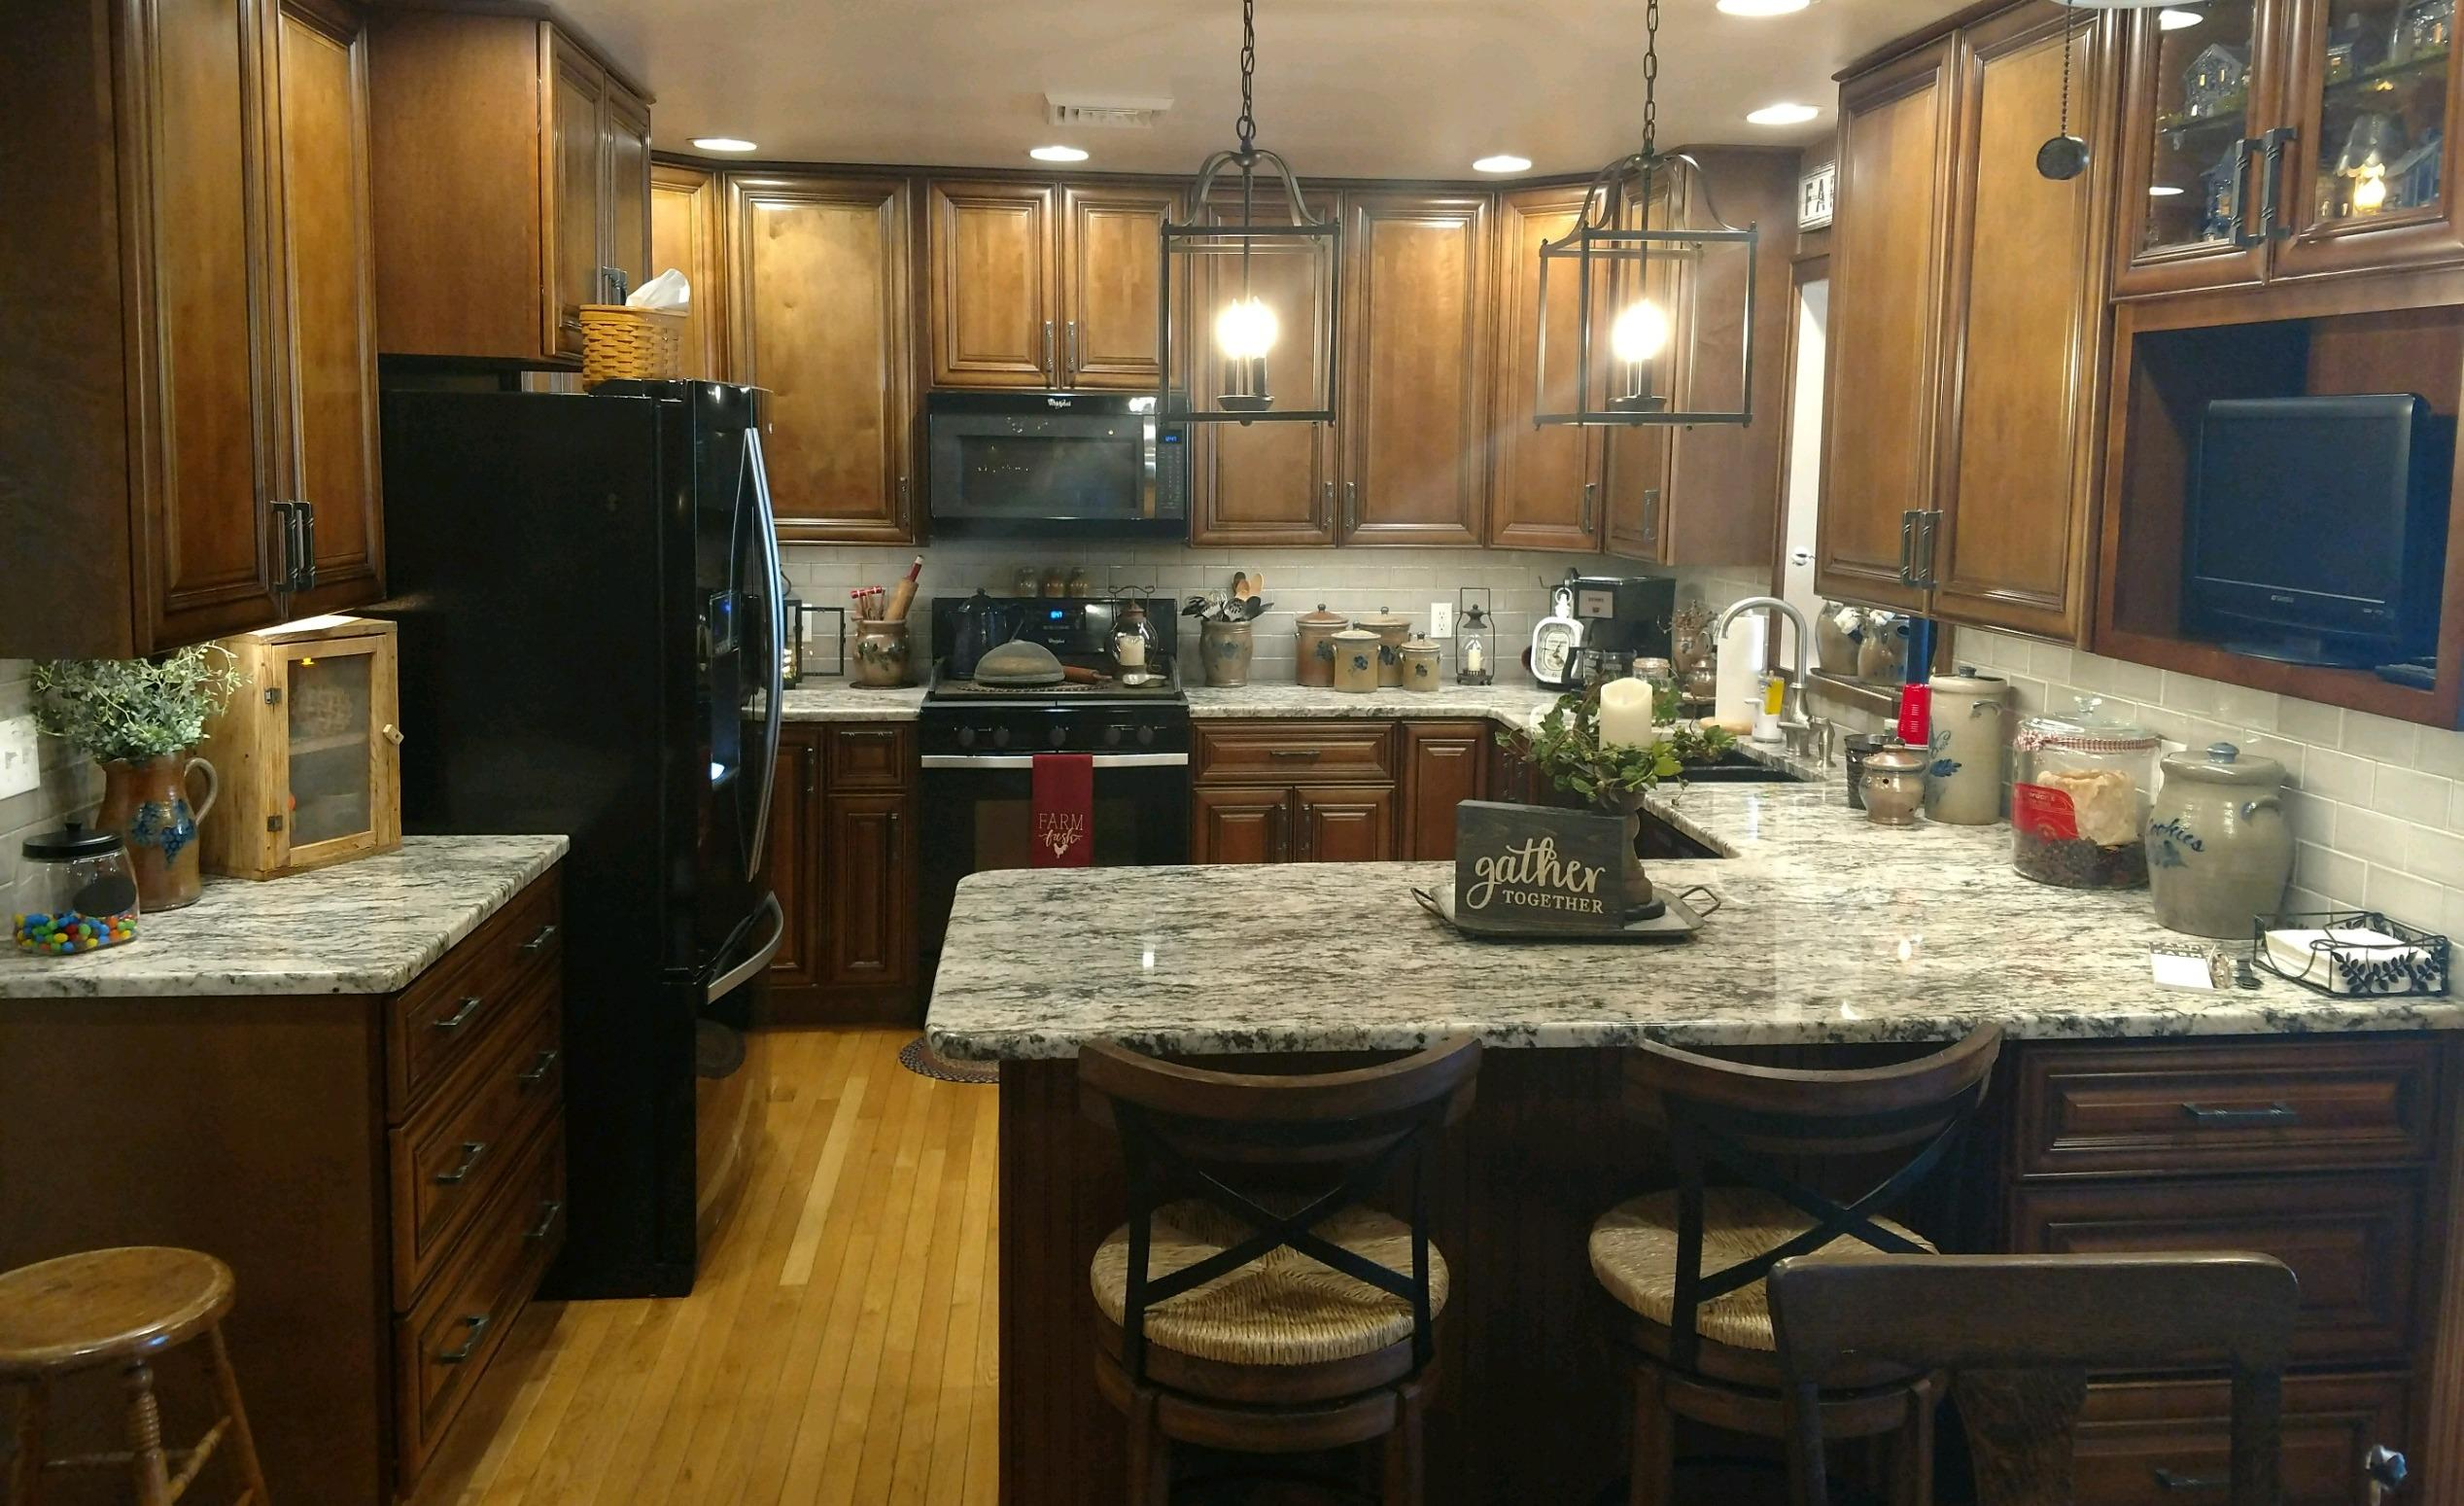 Accurate Upgrades Home Improvements LLC image 0